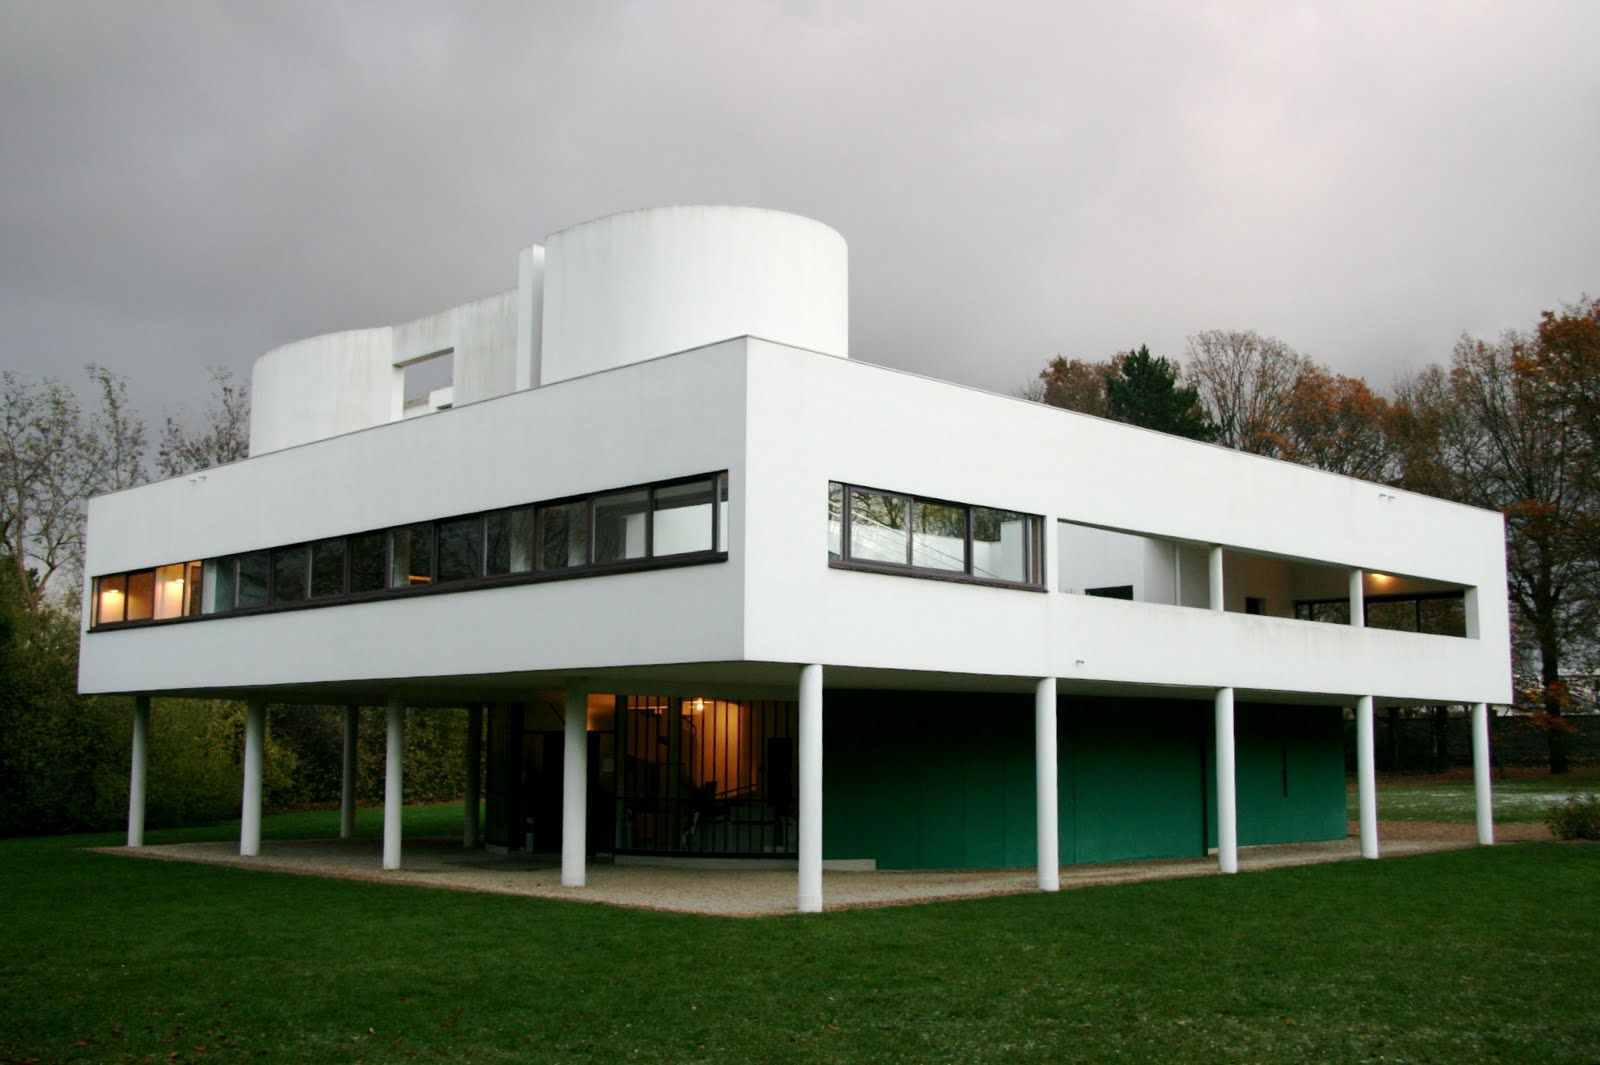 France villa savoye poissy 1929 le corbusier 1920 for Poissy le corbusier